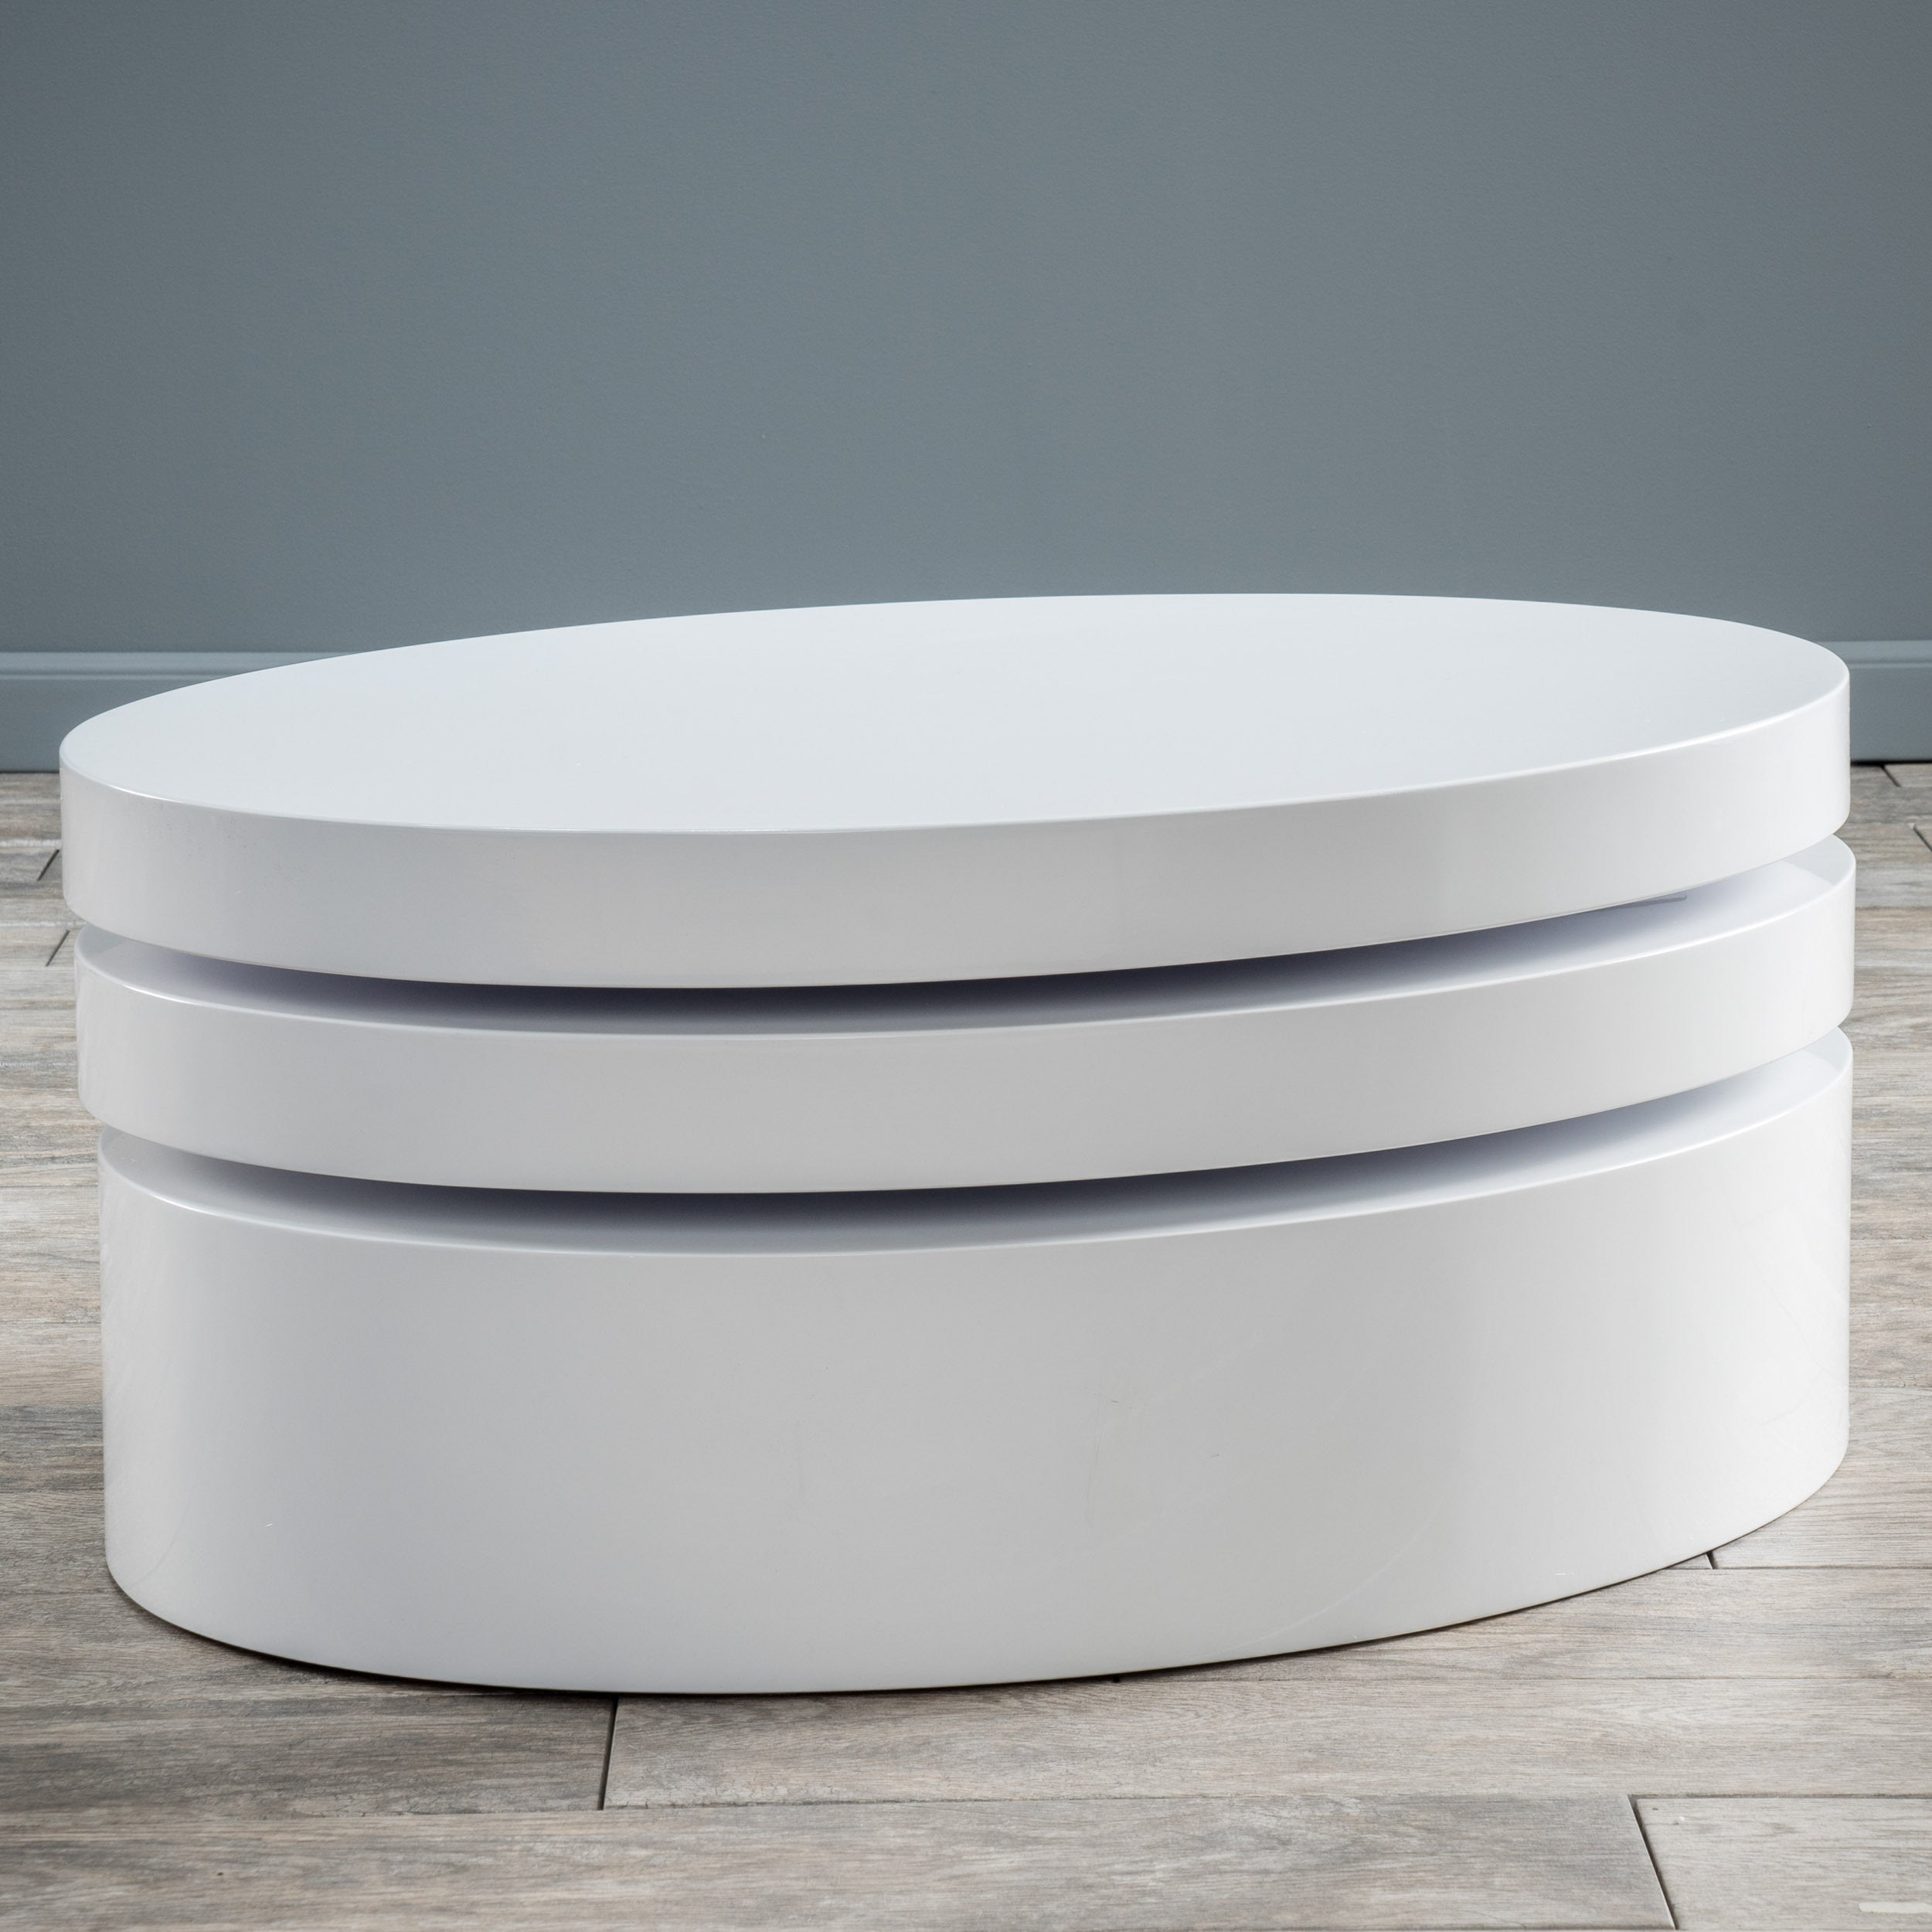 Small Oval Mod Rotatable Coffee Table By Christopher Knight Home On Sale Overstock 9465639